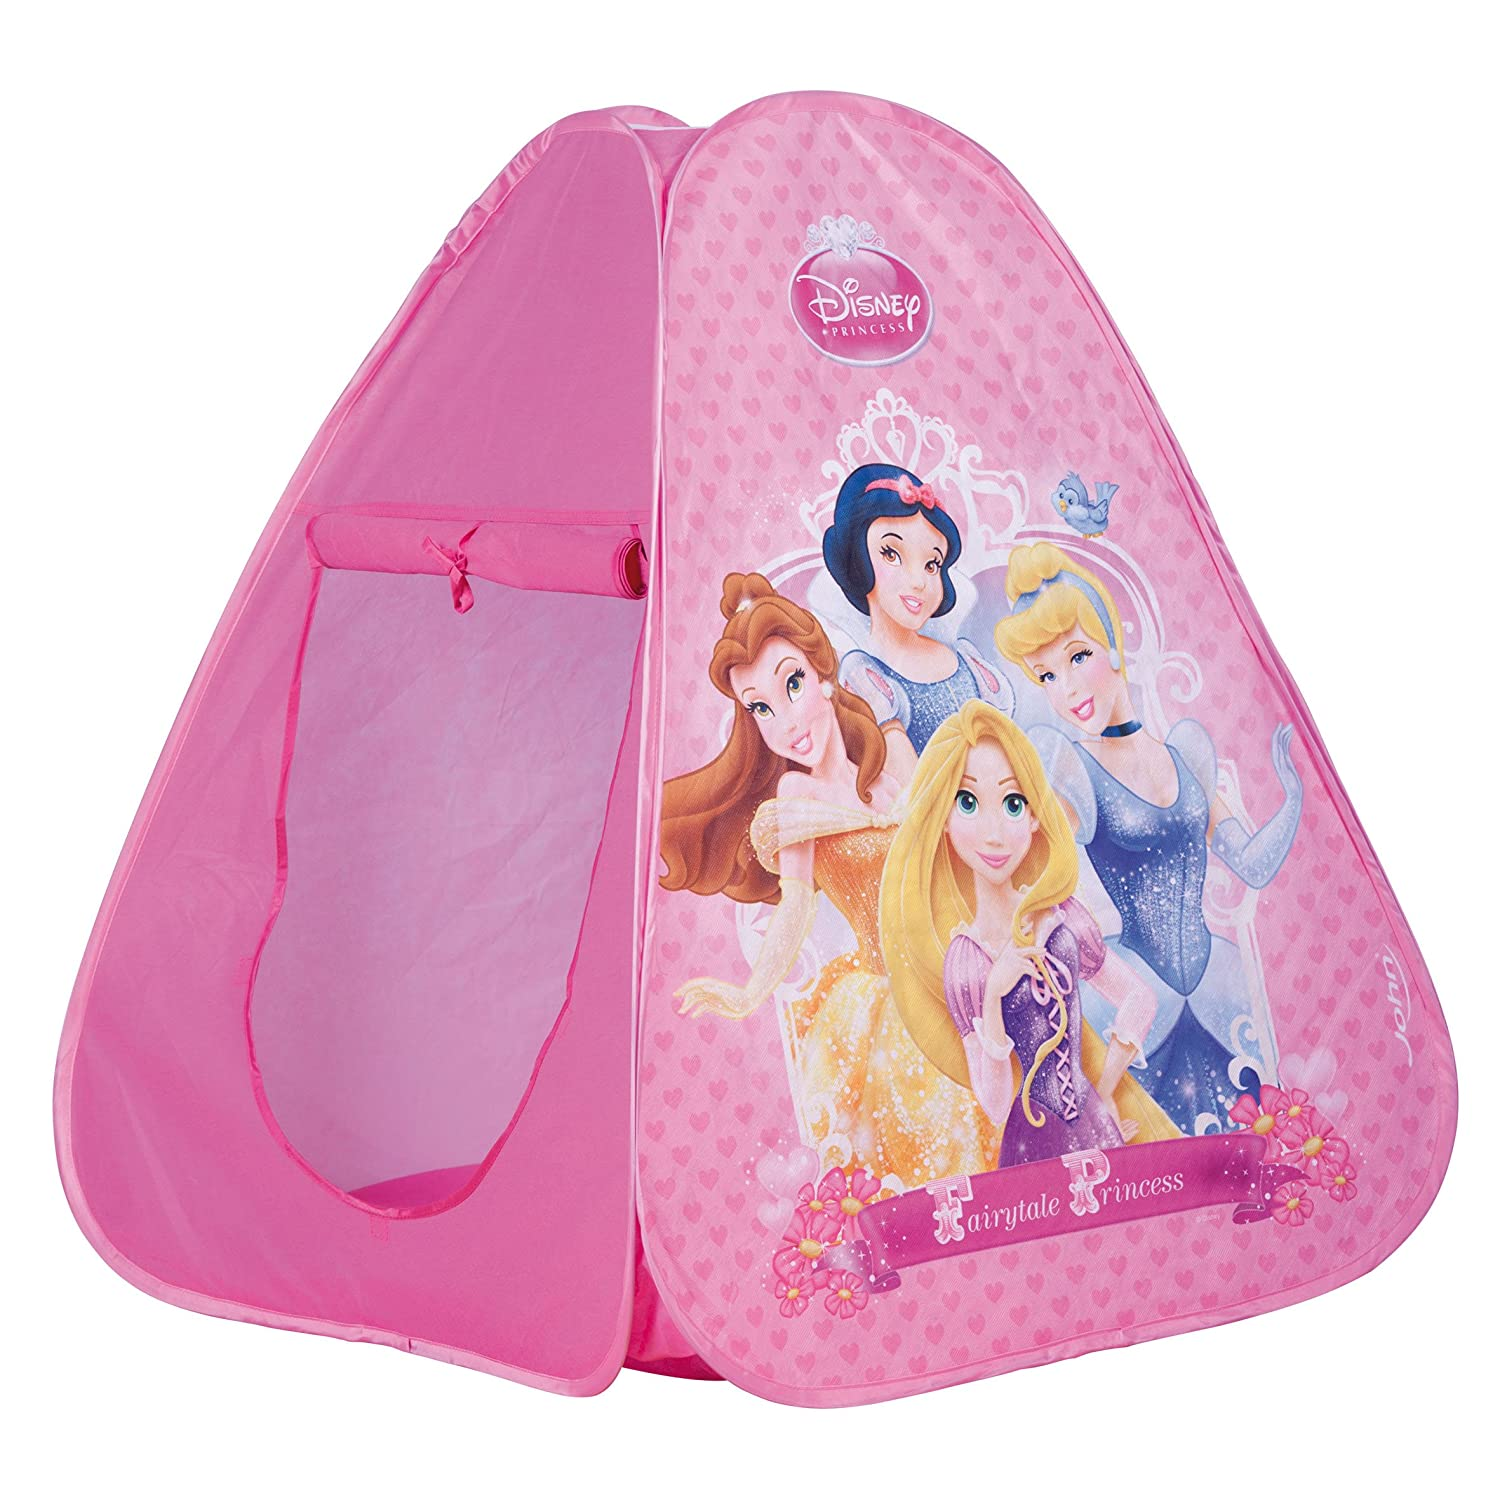 sc 1 st  Amazon.com & Amazon.com: Disney Princess Pop Up Tent: Toys u0026 Games